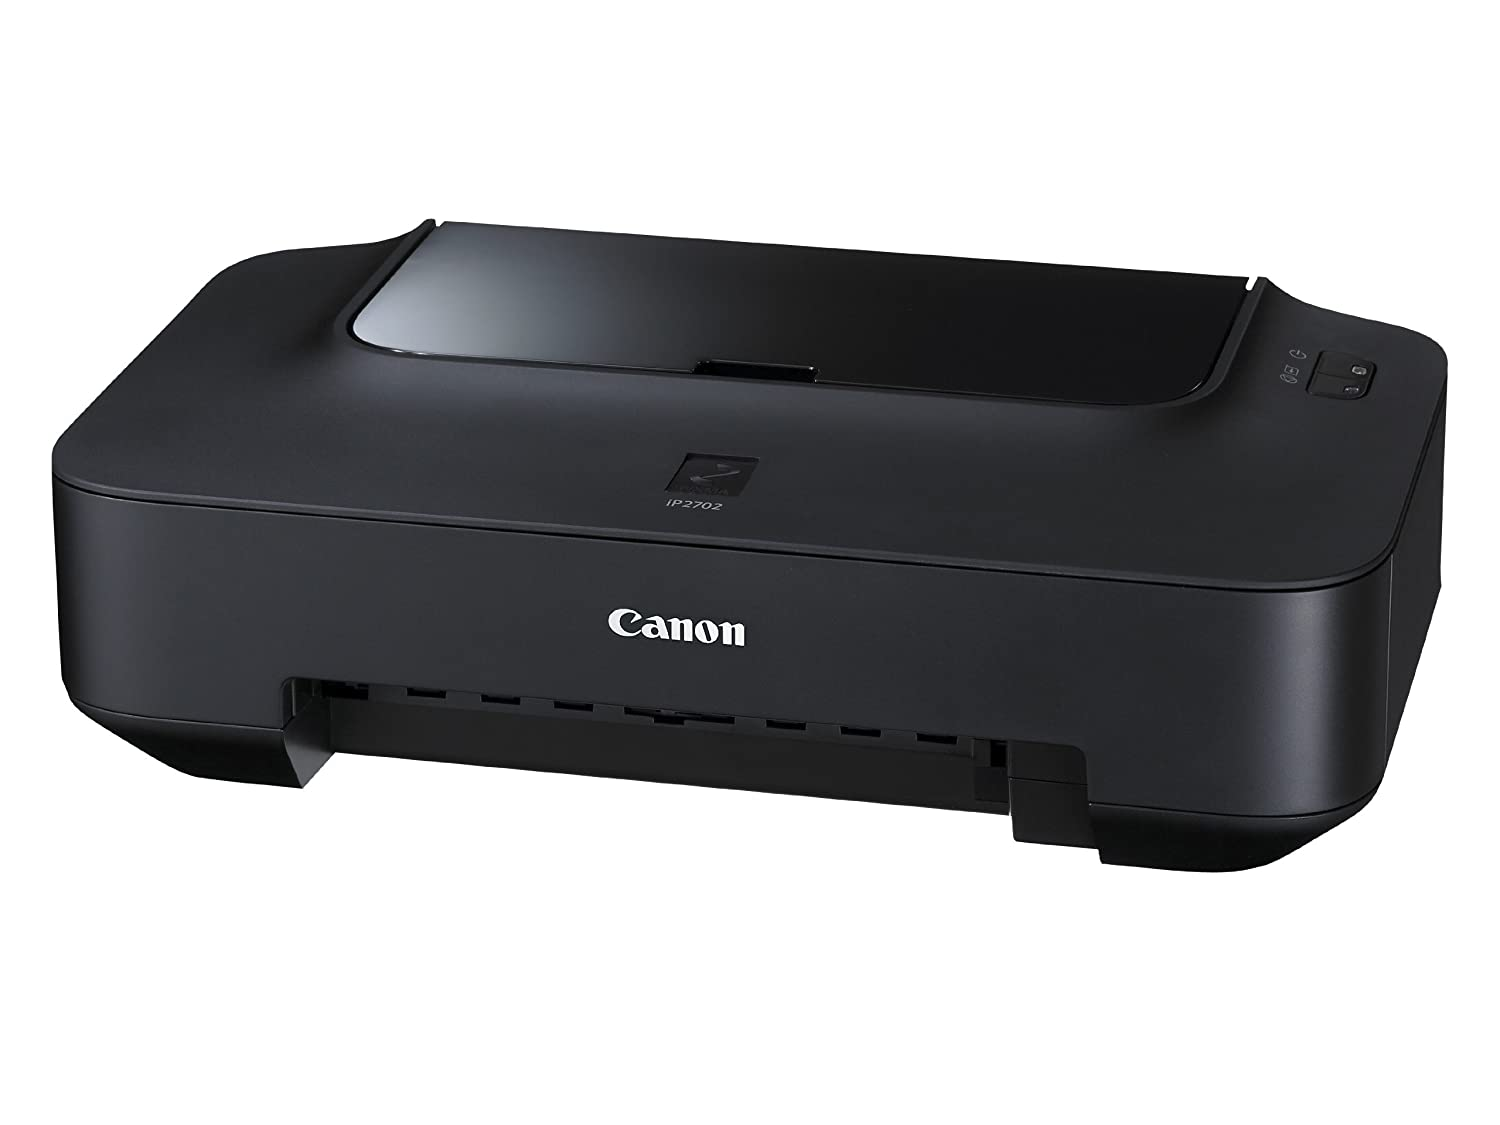 CANON IP2702 PRINTER DRIVERS WINDOWS 7 (2019)